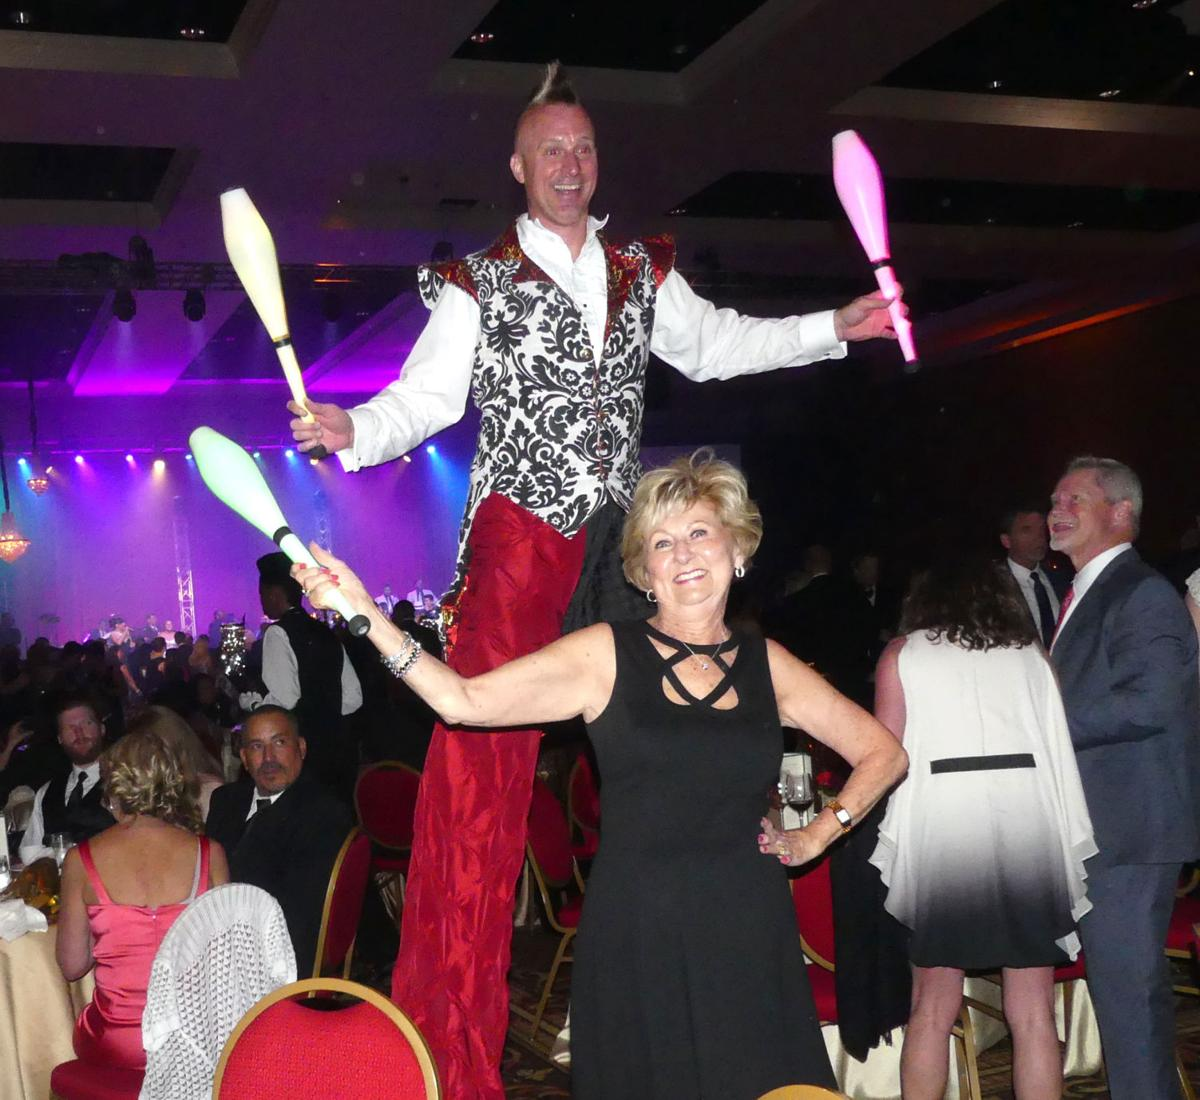 Broadmoor 100th Anniversary Gala: Char Anneler learns a little juggling action from a stilt walker, one of the entertainers. 060218 Photo by Linda Navarro